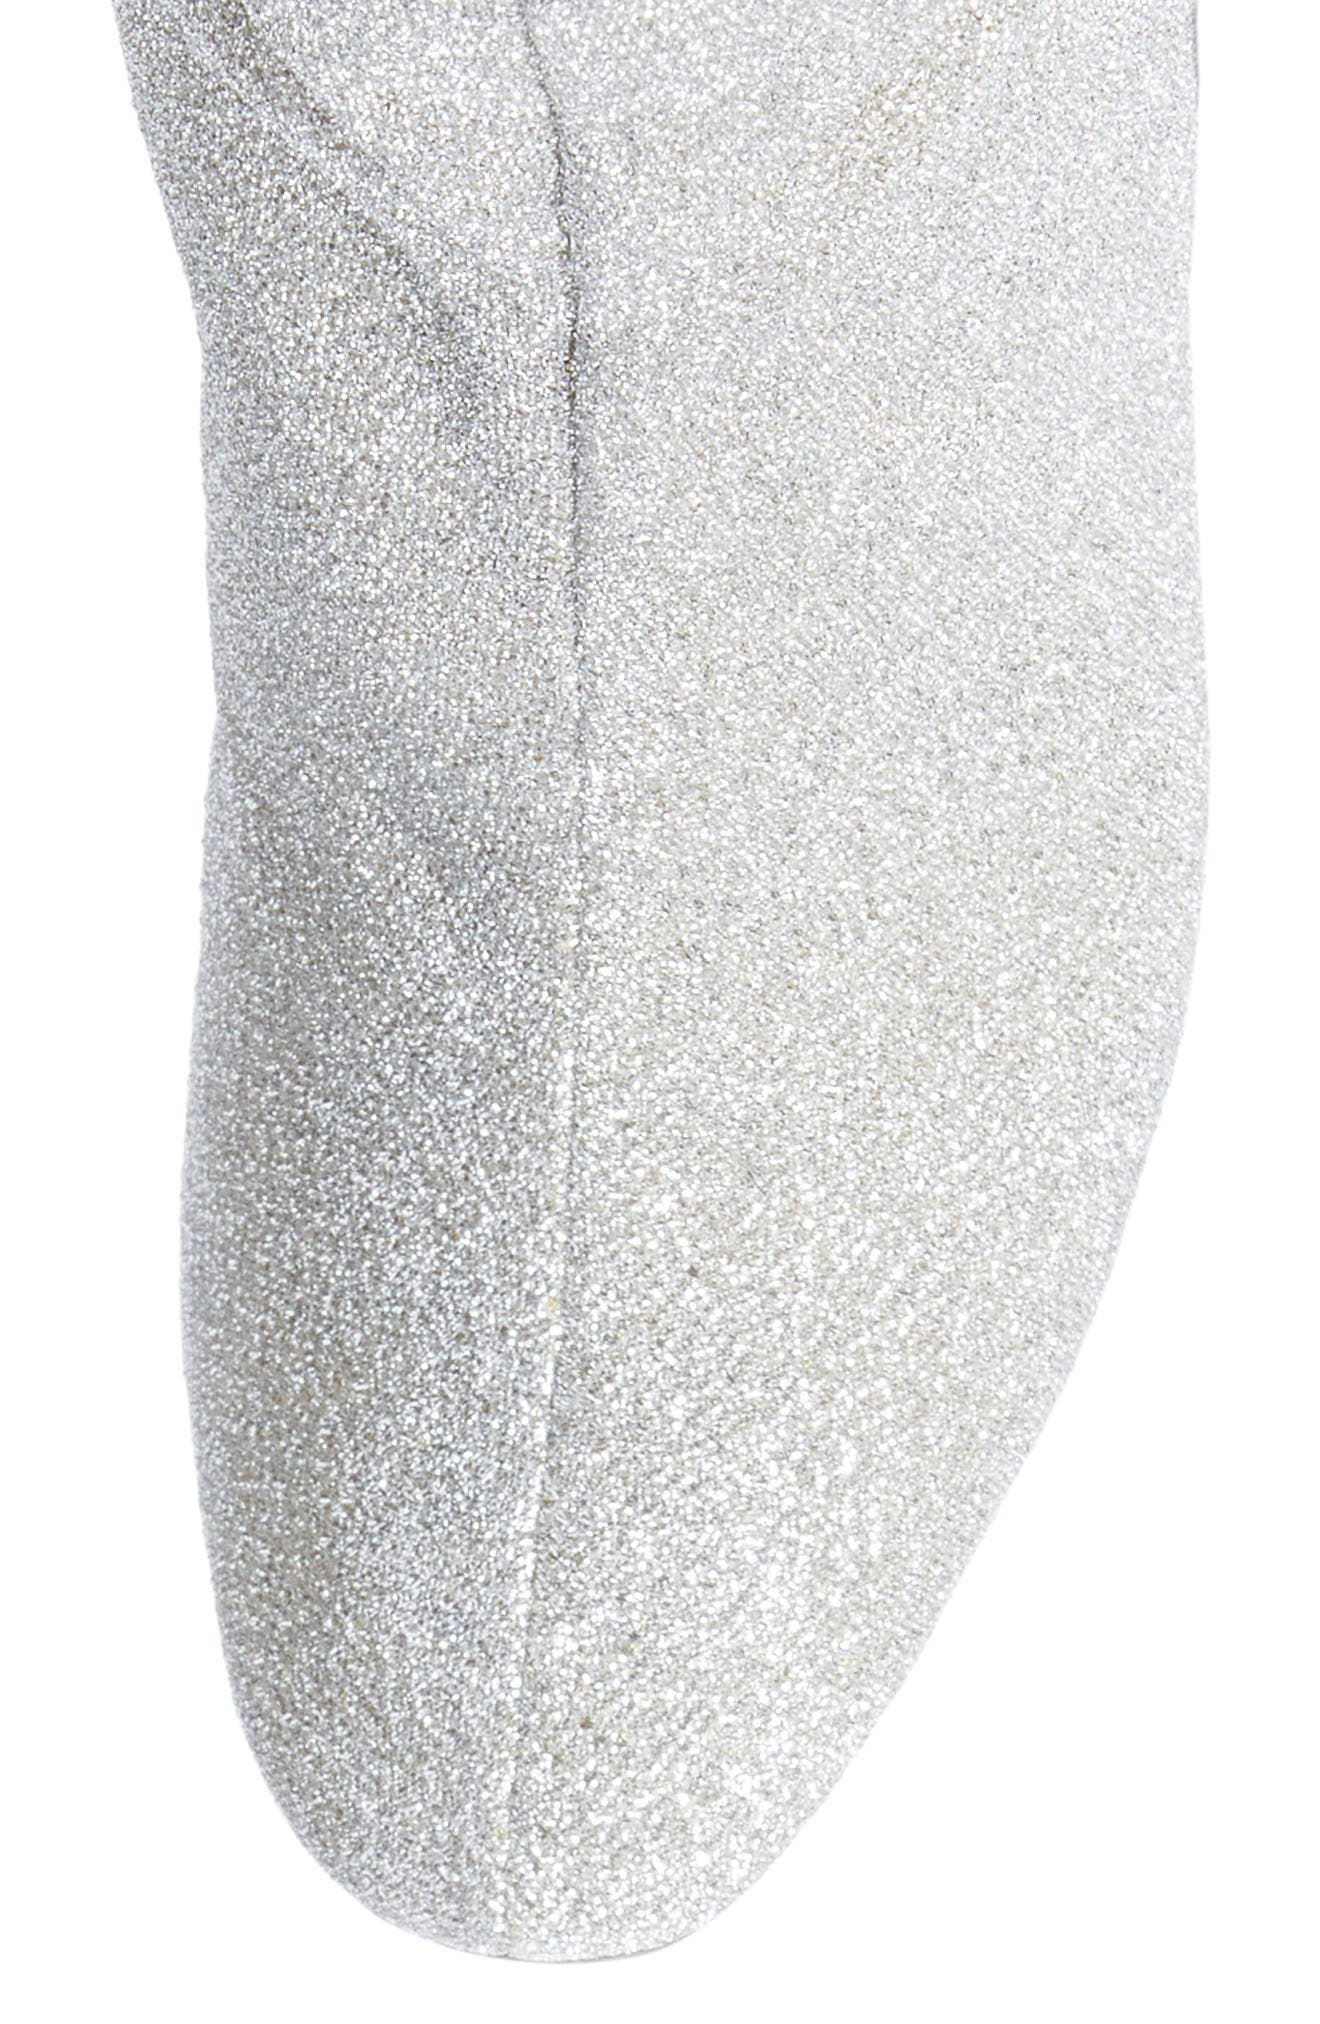 Corella Boot,                             Alternate thumbnail 5, color,                             Silver Glitter